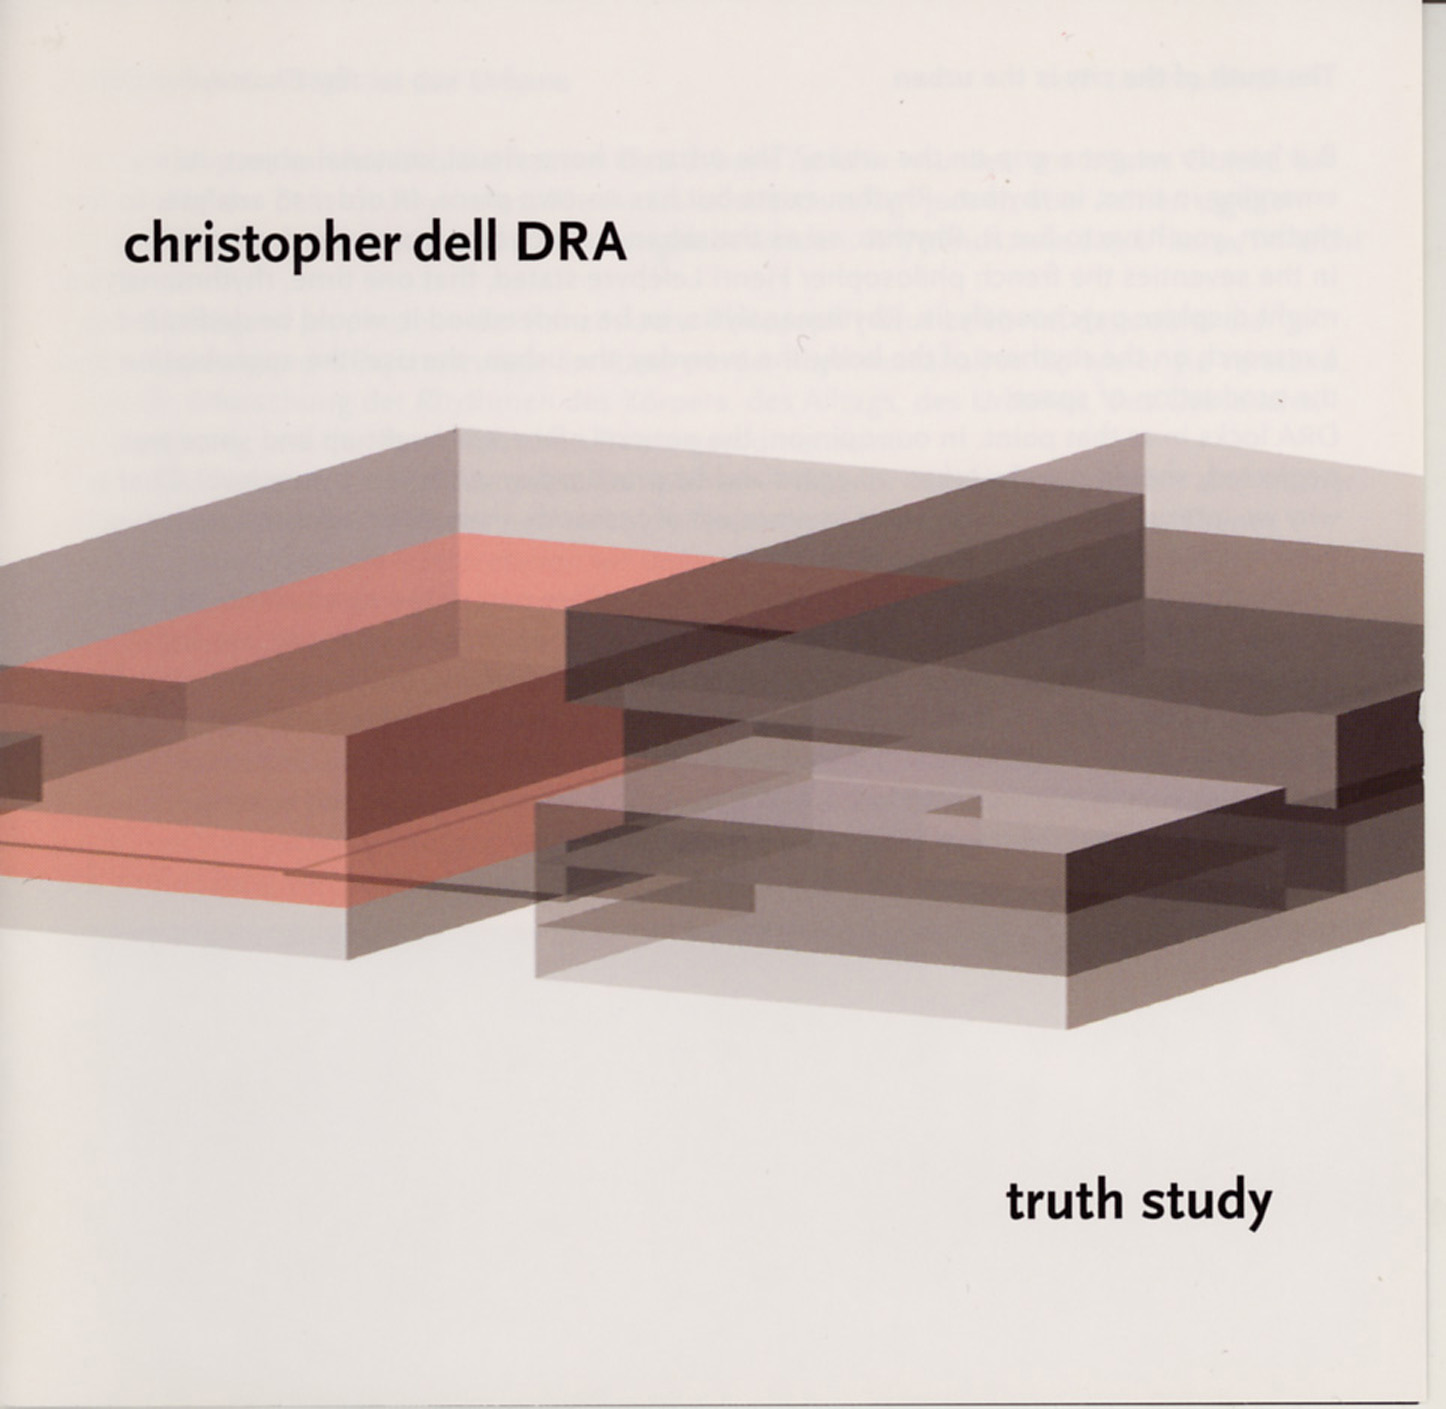 dra truth study front cover